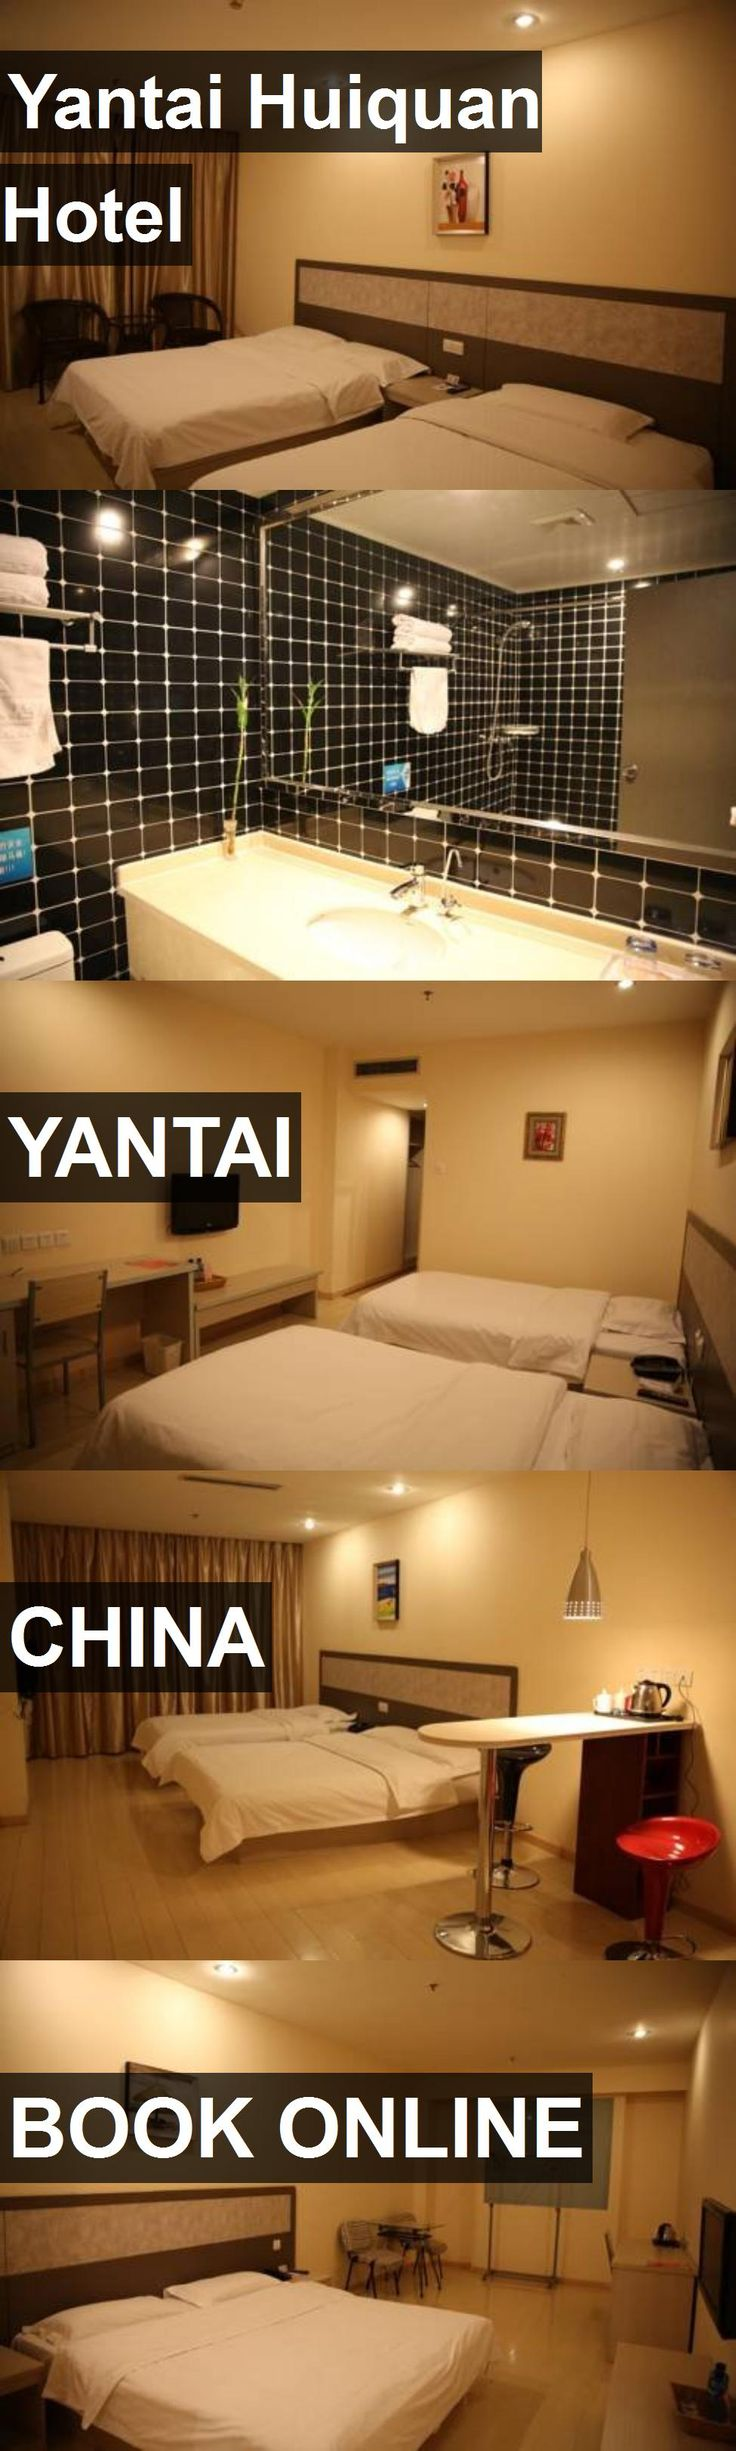 Hotel Yantai Huiquan Hotel in Yantai, China. For more information, photos, reviews and best prices please follow the link. #China #Yantai #YantaiHuiquanHotel #hotel #travel #vacation